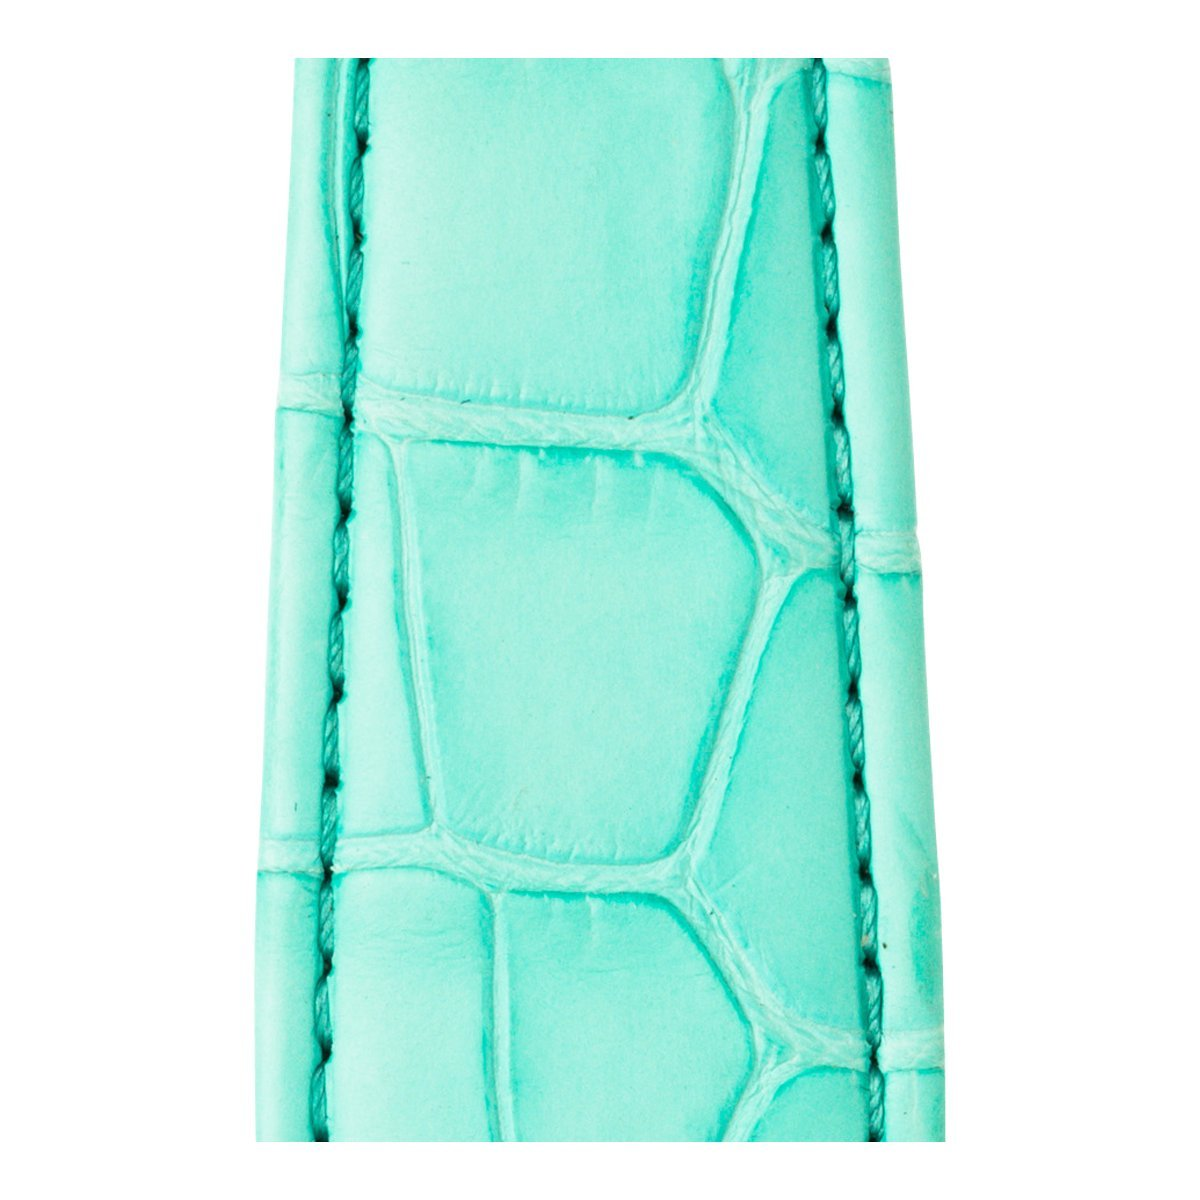 Roobaya | Premium Alligator Leather Apple Watch Band in Turquoise | Includes Adapters matching the Color of the Apple Watch, Case Color:Rose Gold Aluminum, Size:38 mm by Roobaya (Image #5)